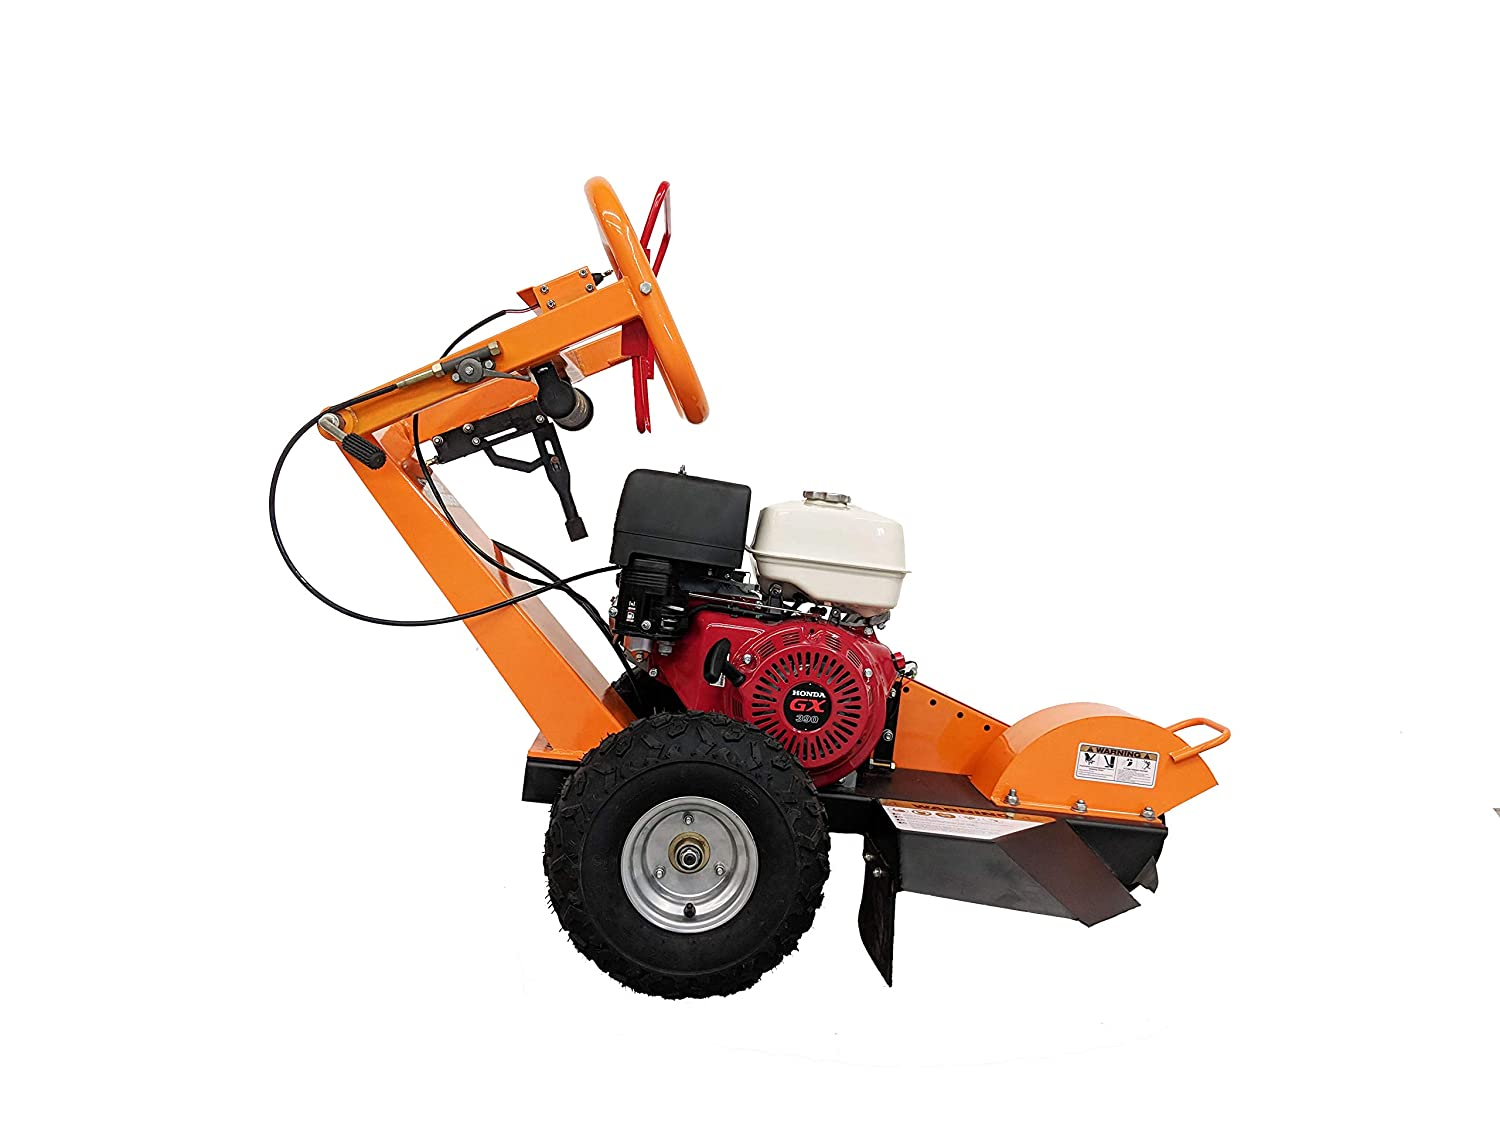 5.House of Contractor STG13 Stump Grinder